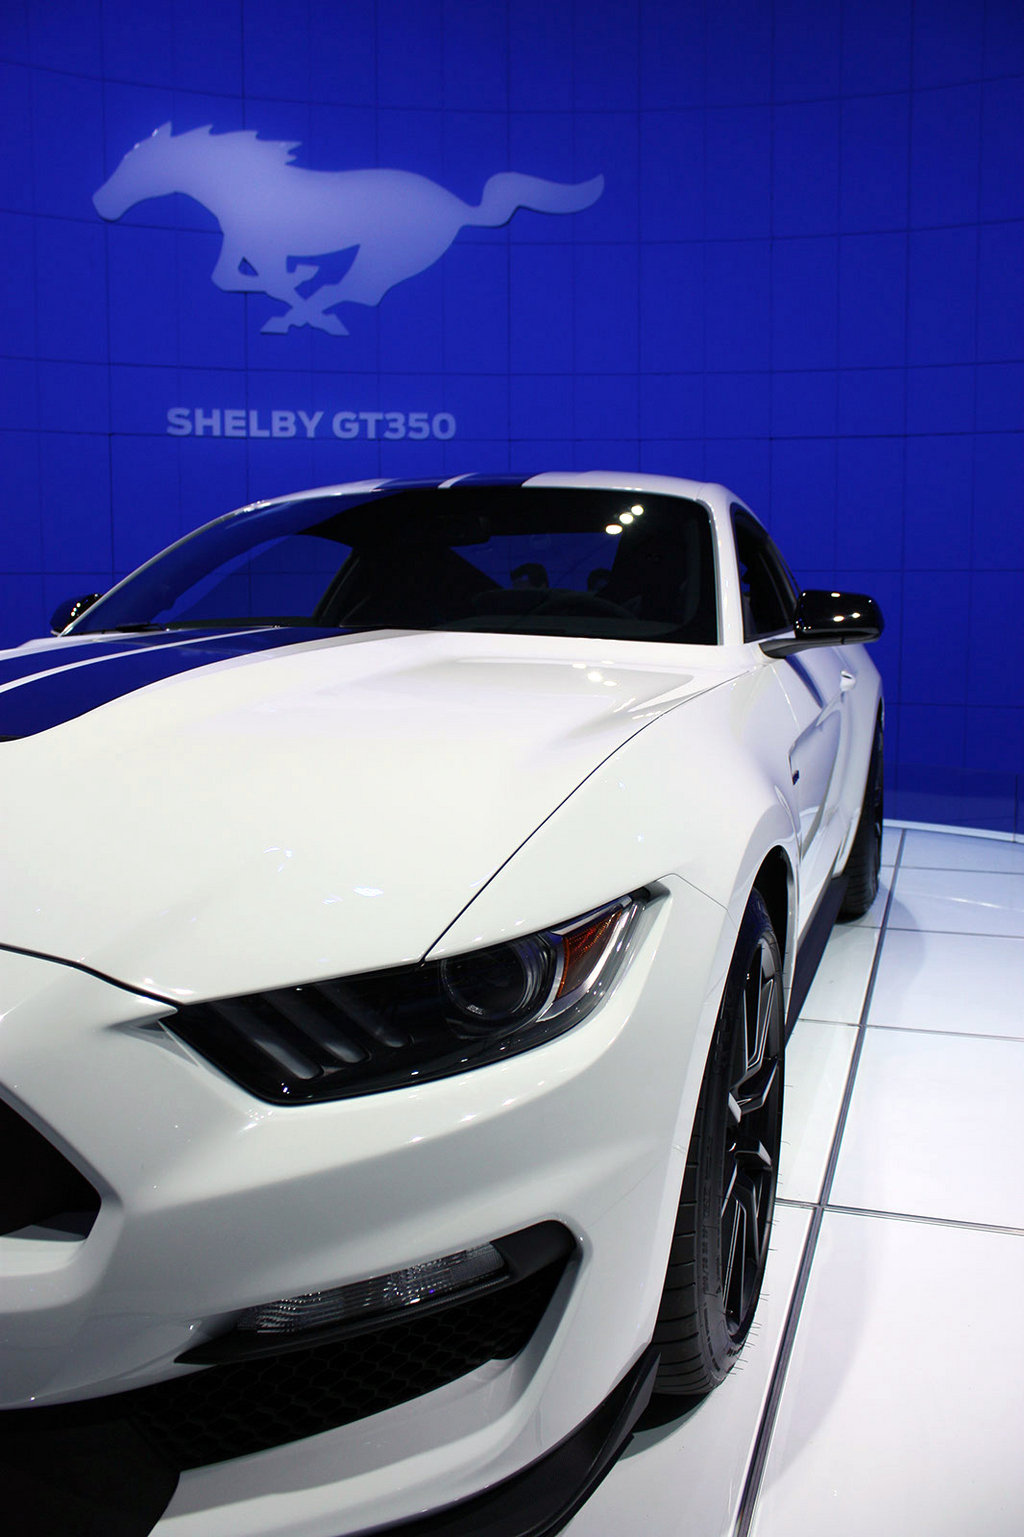 2016 2017 ford shelby gt350 mustang picture 579125. Black Bedroom Furniture Sets. Home Design Ideas